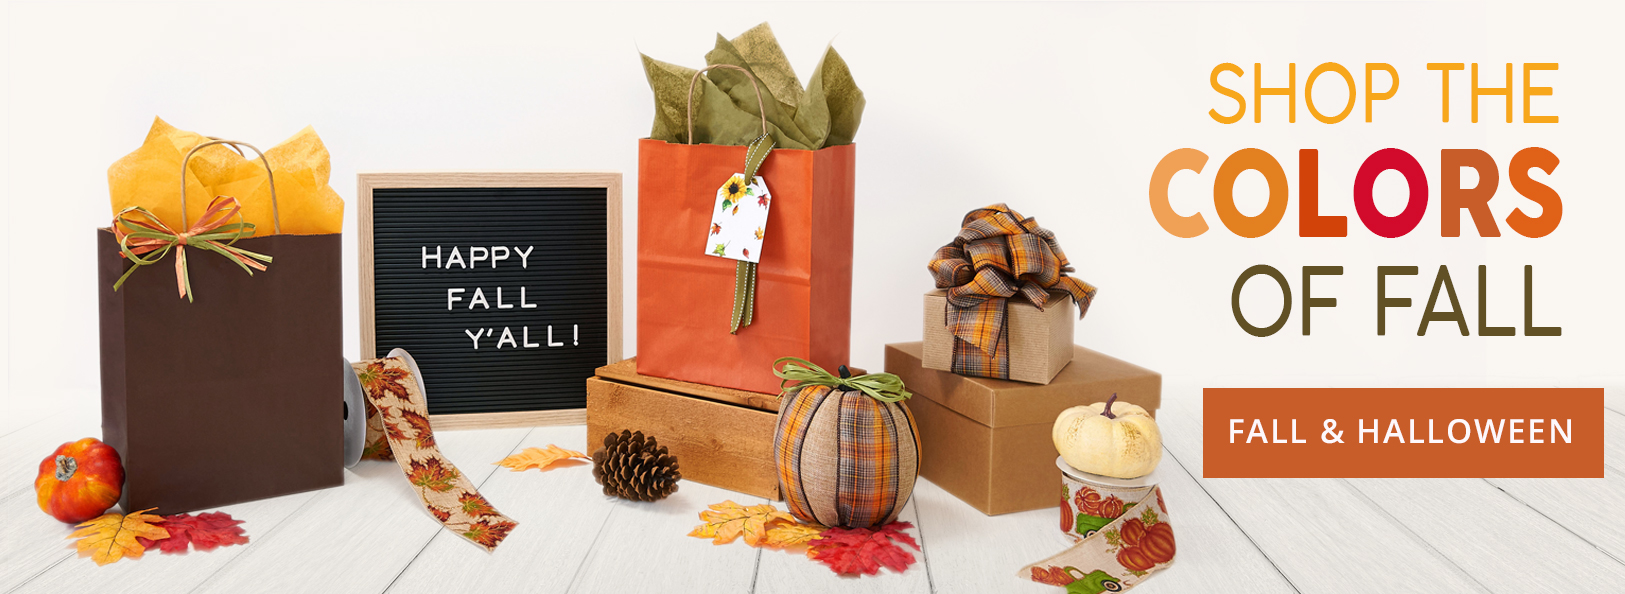 Celebrate the colors of Fall with Fall and Halloween packaging